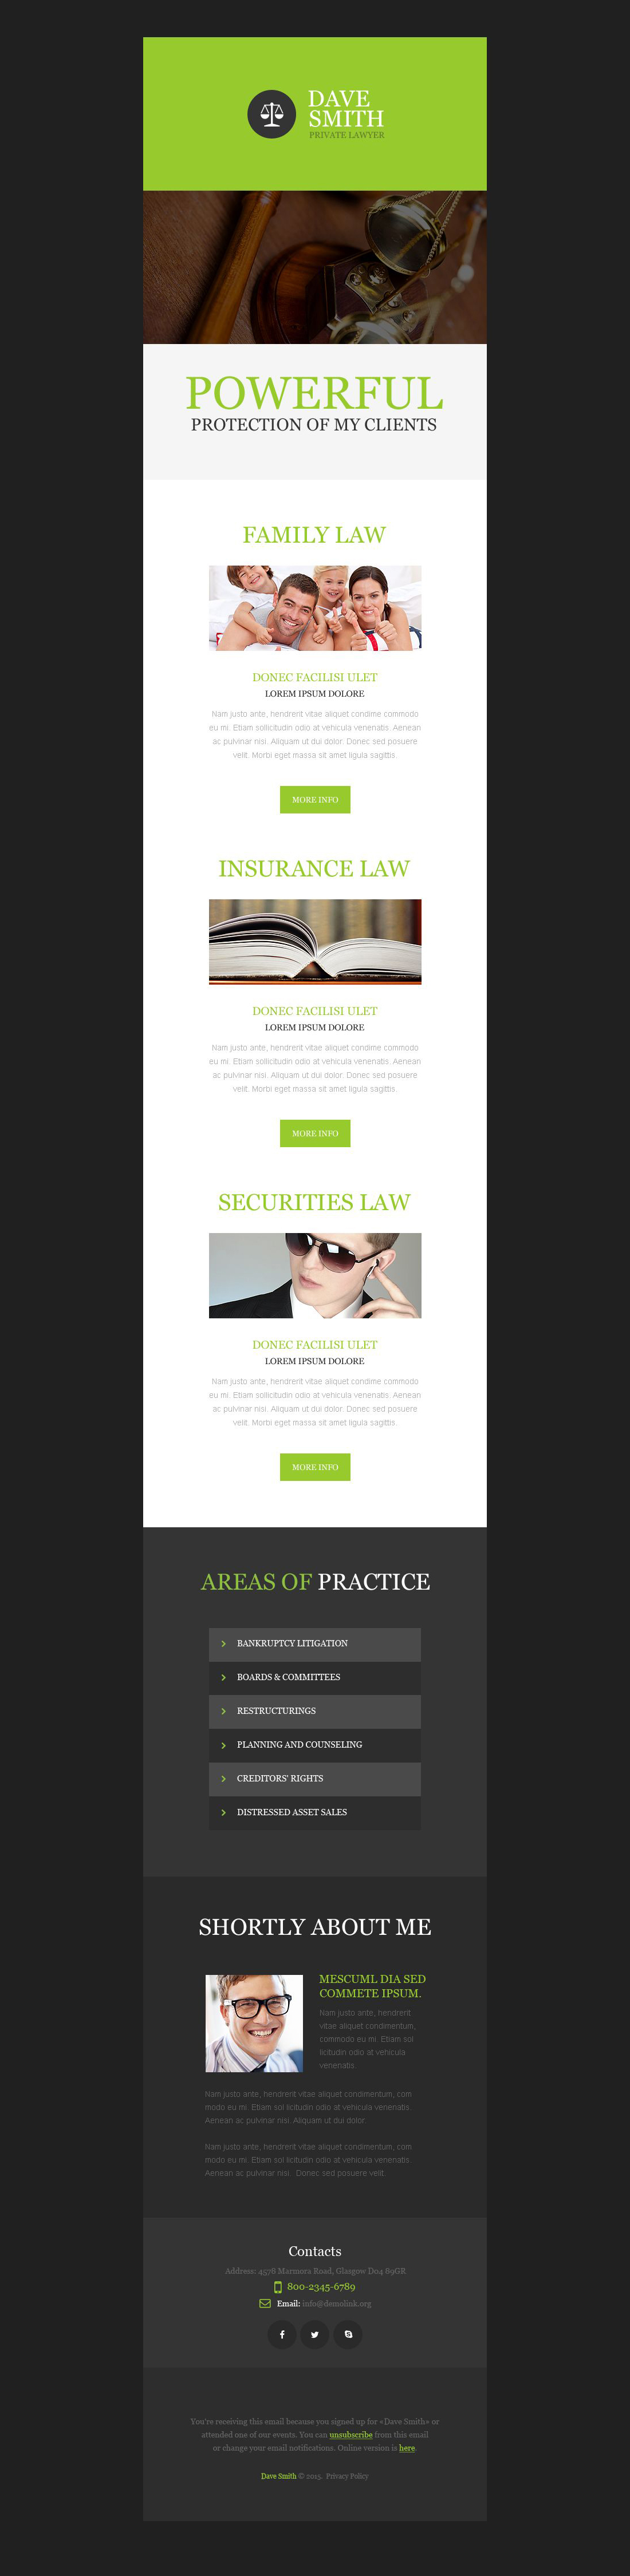 Law Firm Newsletter Template #53195